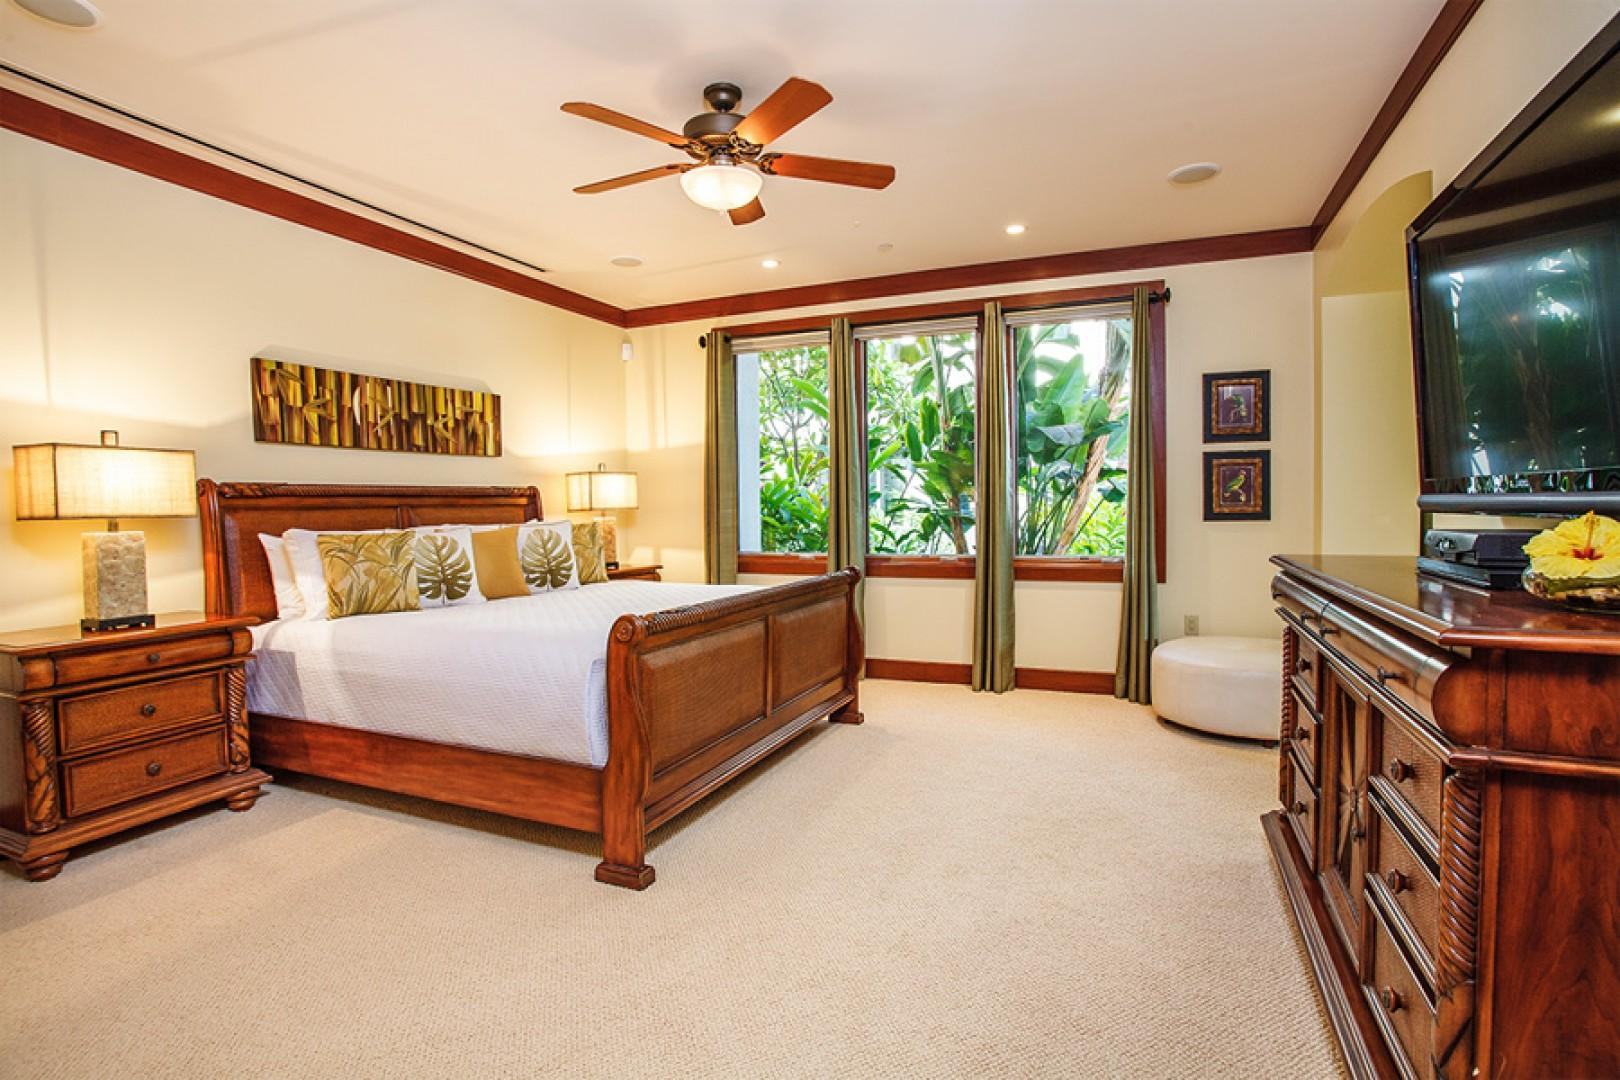 Second master bedroom, with king bed, office nook, and outdoor grotto shower.